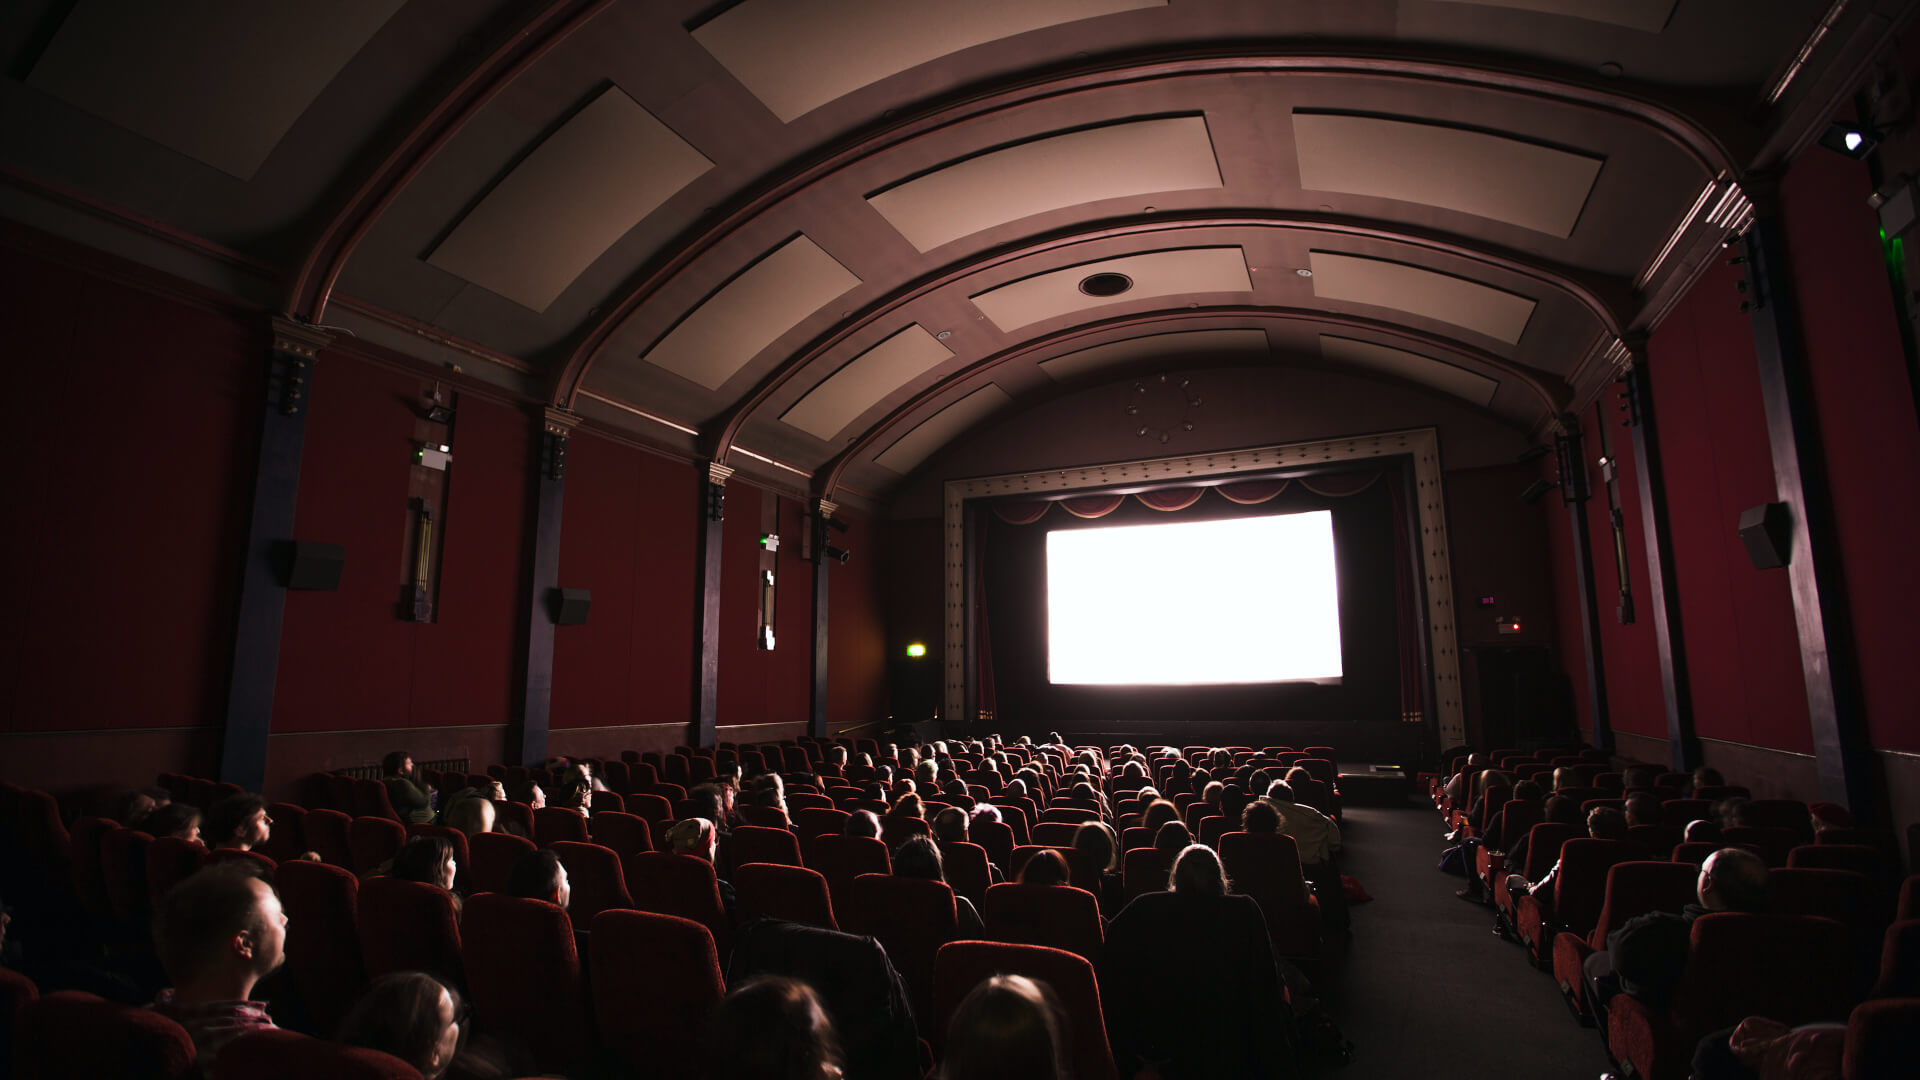 Image of Crowd in cinema theater with big white screen.